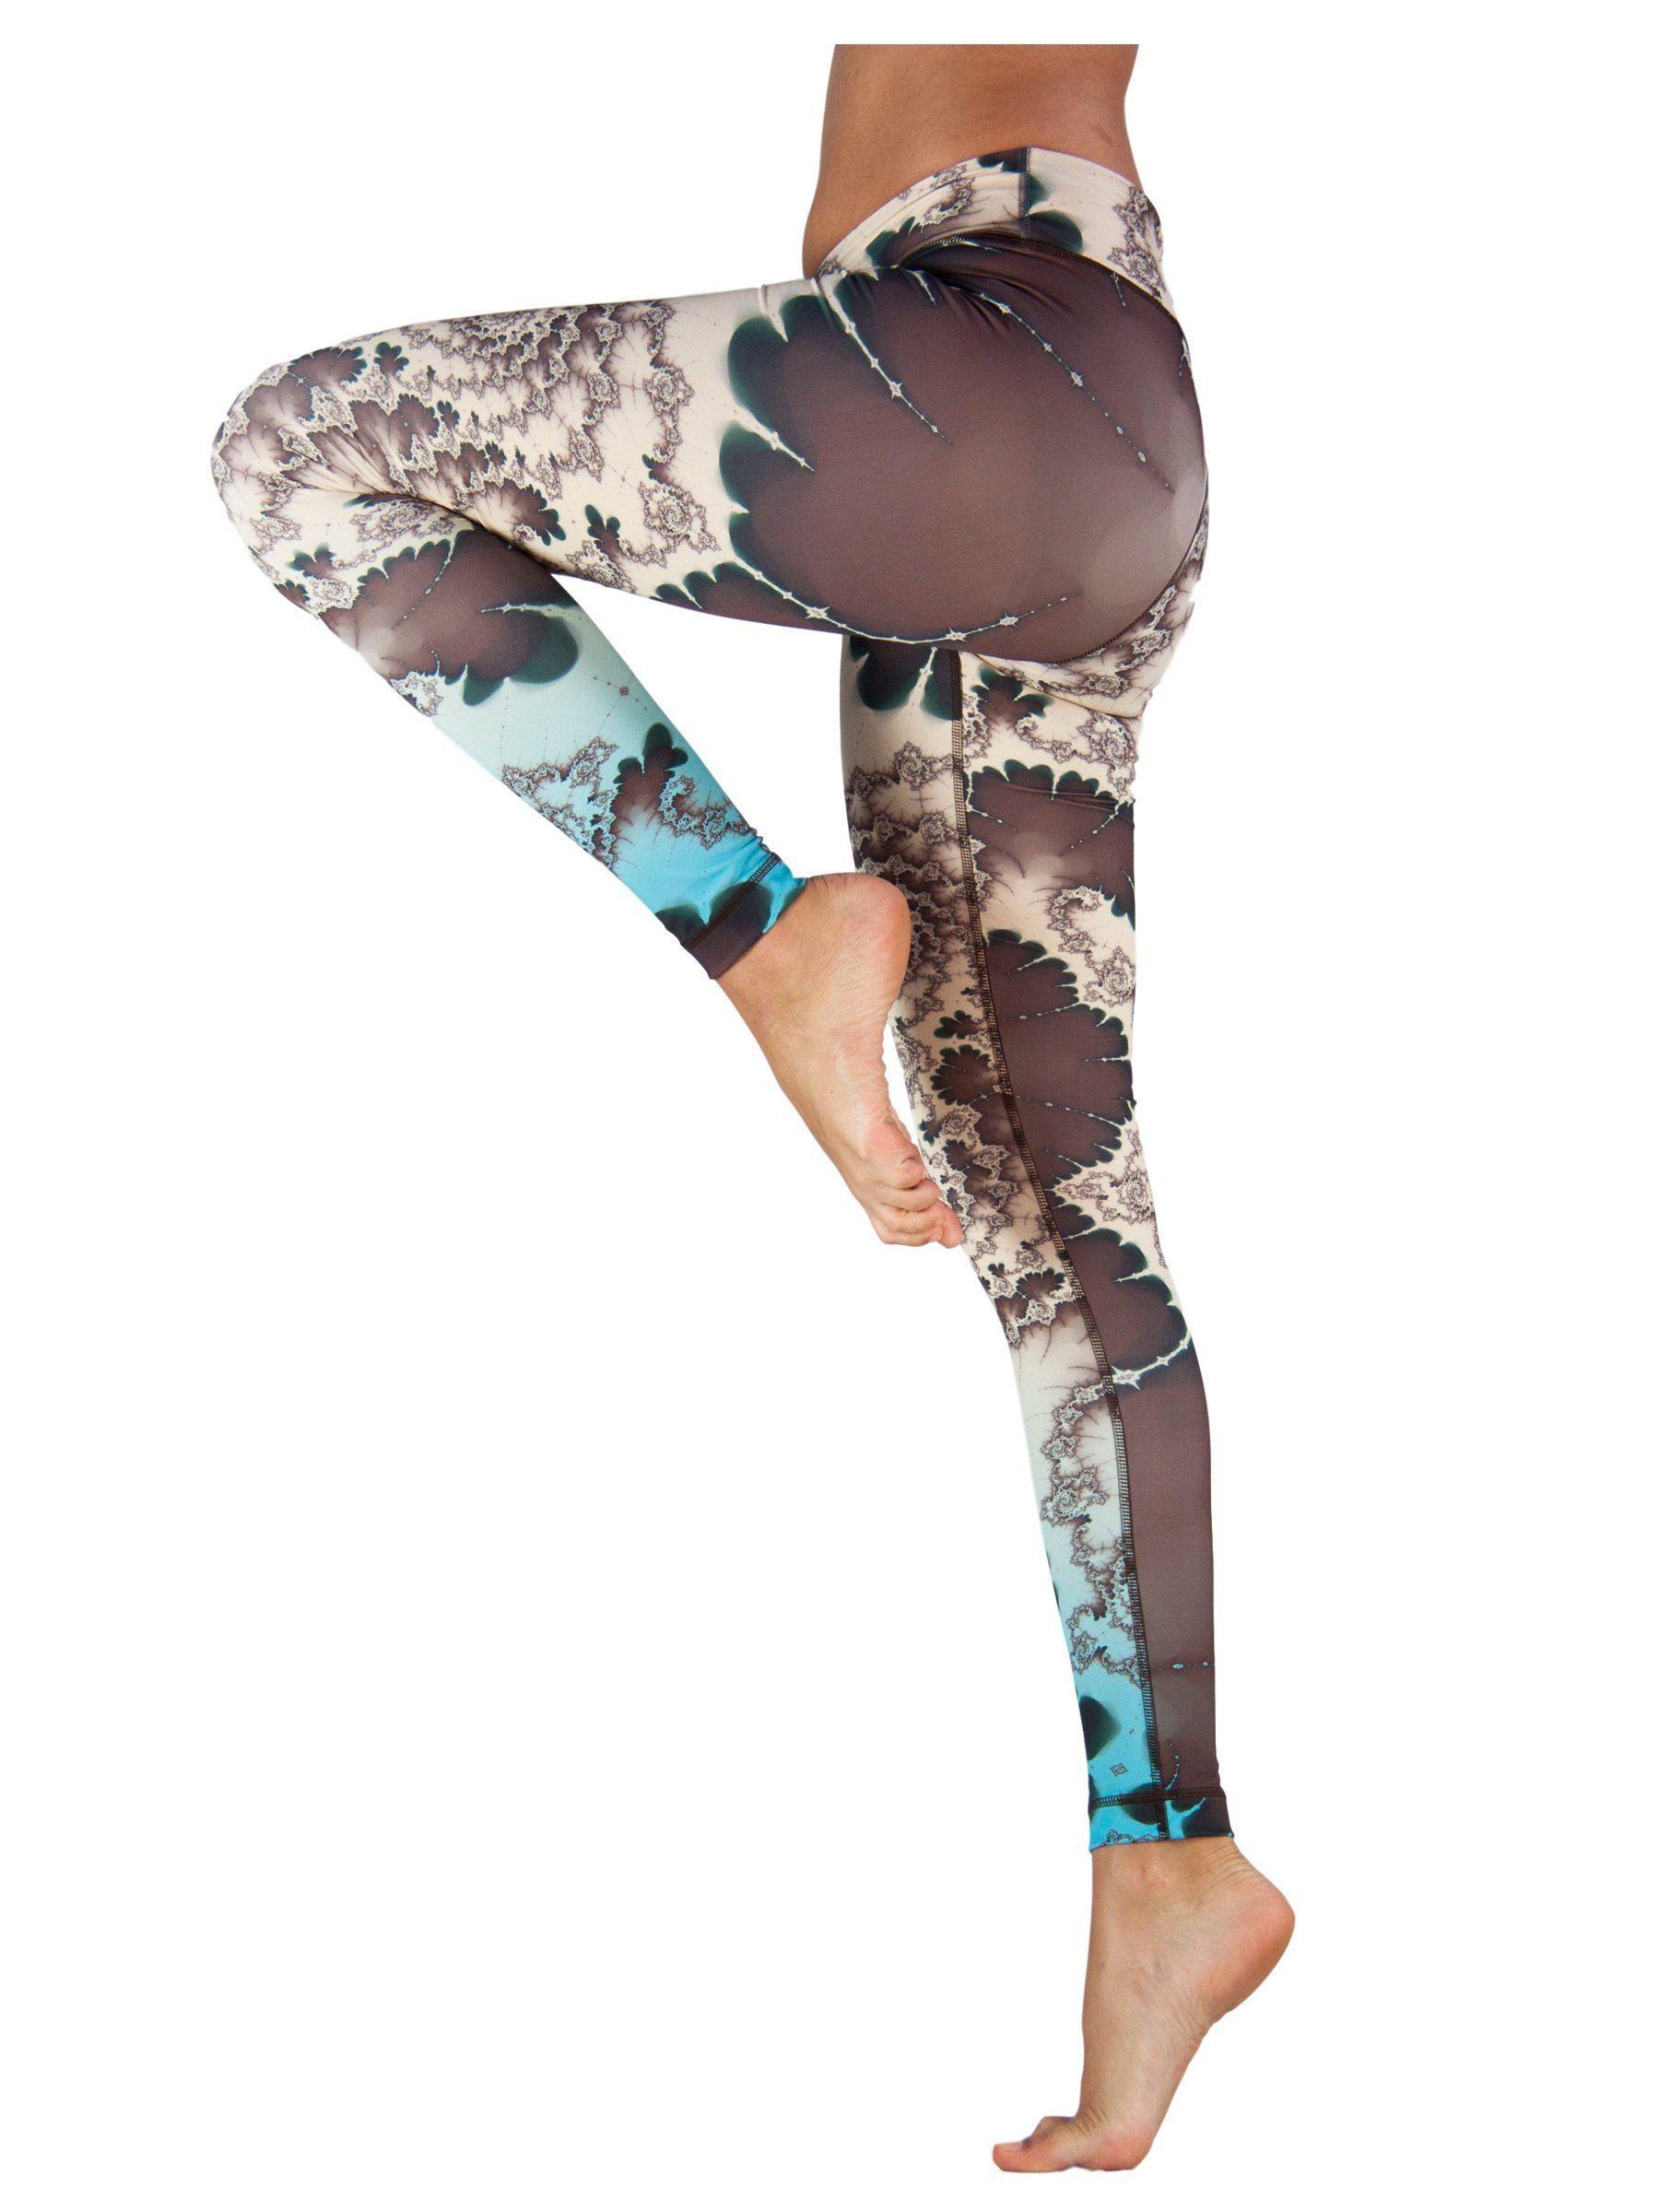 Emerald Spring by Niyama - High Quality, , Yoga Legging for Movement Artists.